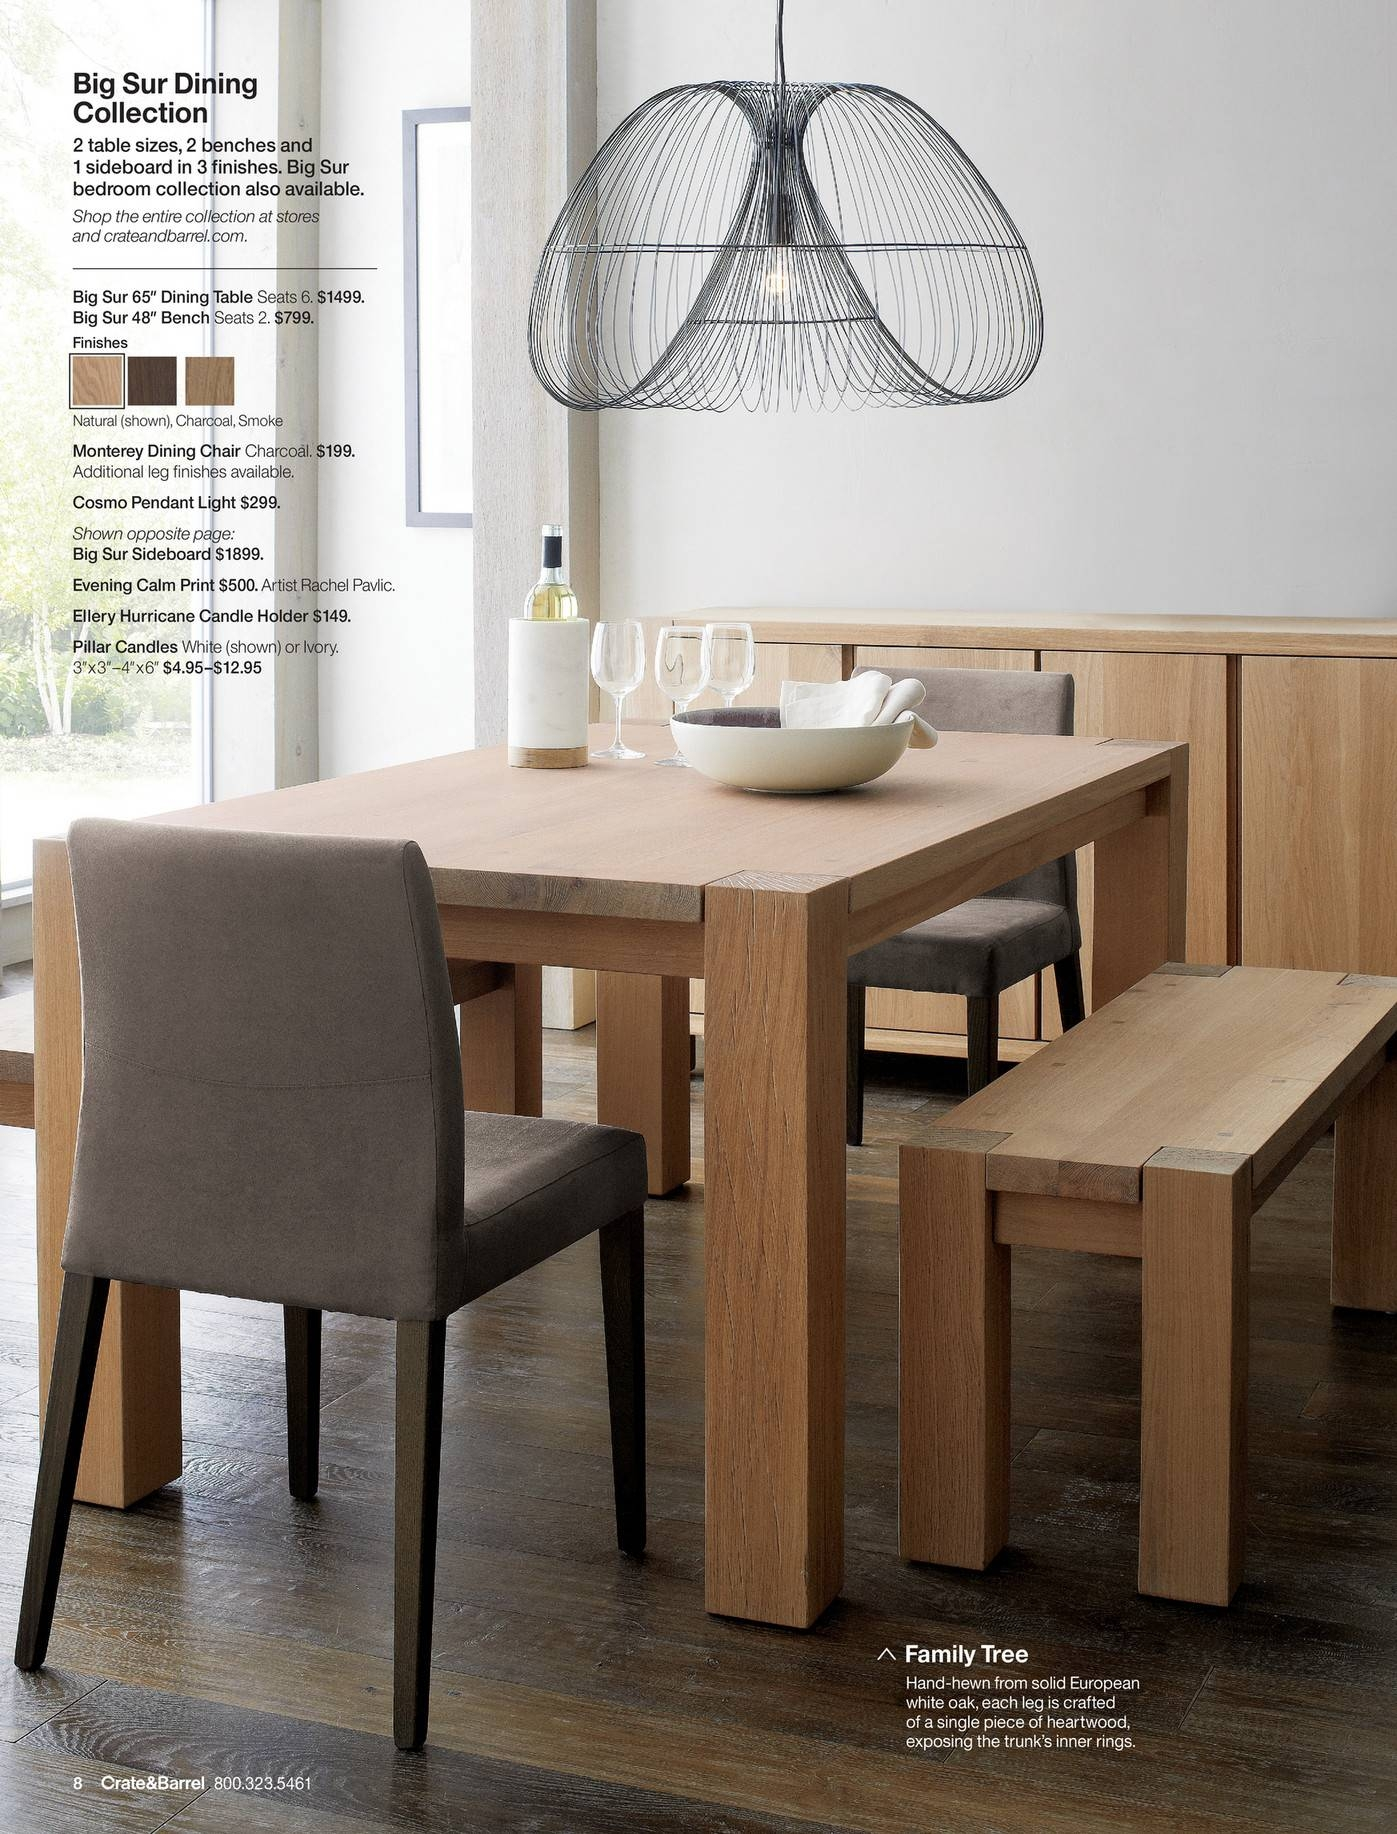 Dining Set: Classy And Comfortable Dining Table Styles With Crate regarding Crate and Barrel Pendant Lights (Image 11 of 15)